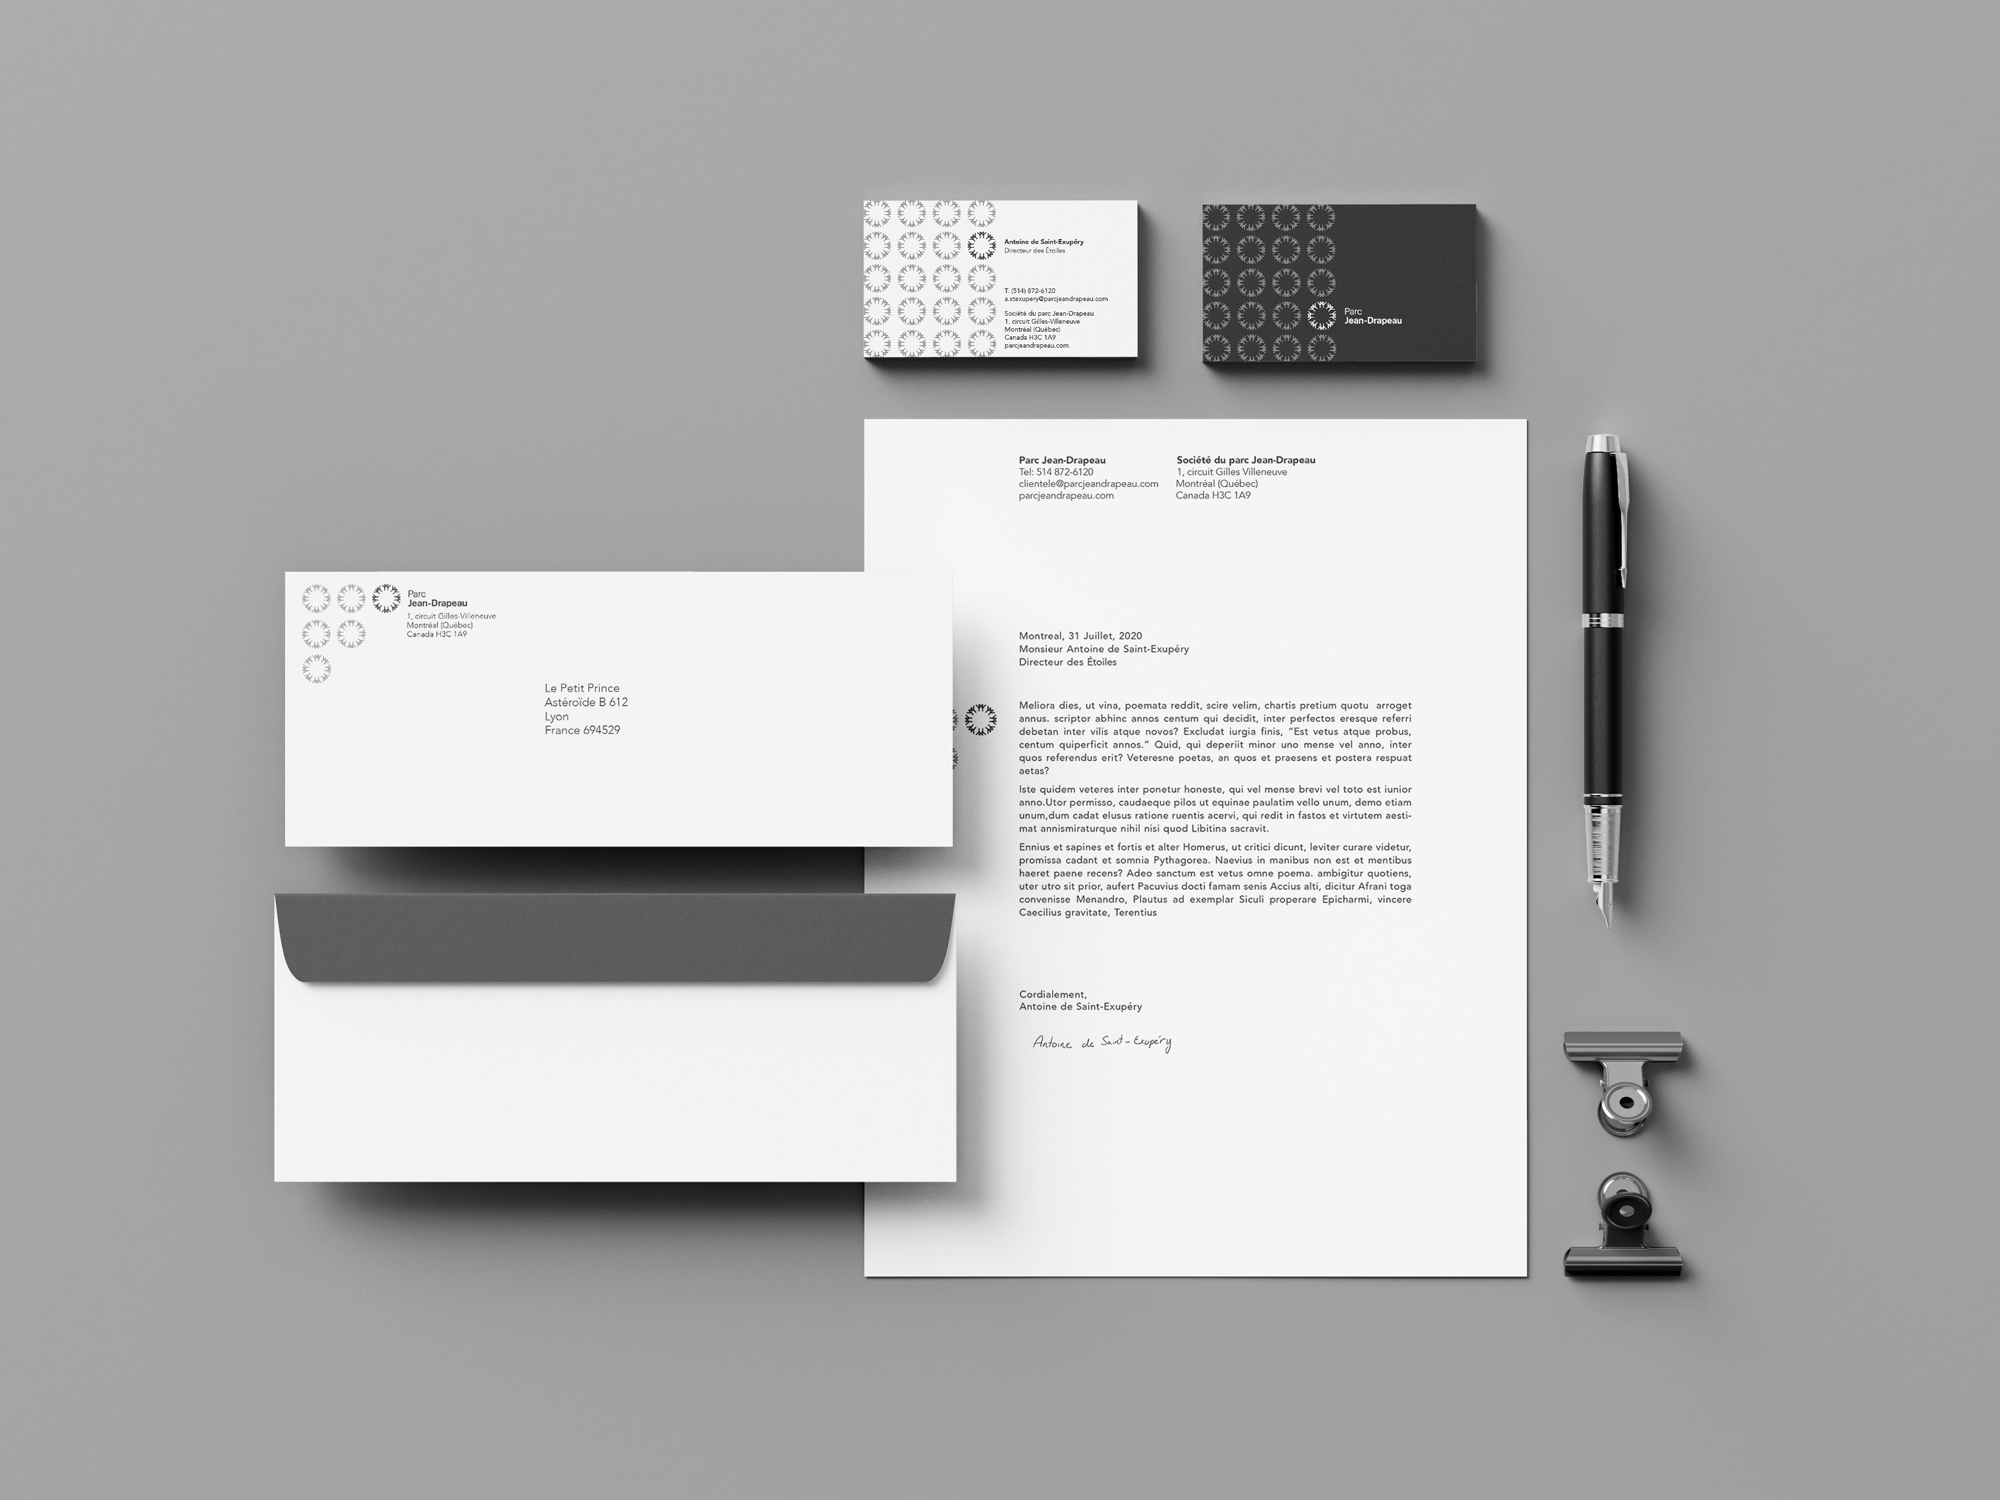 mockup of the Jean-Drapeau stationery in black and white